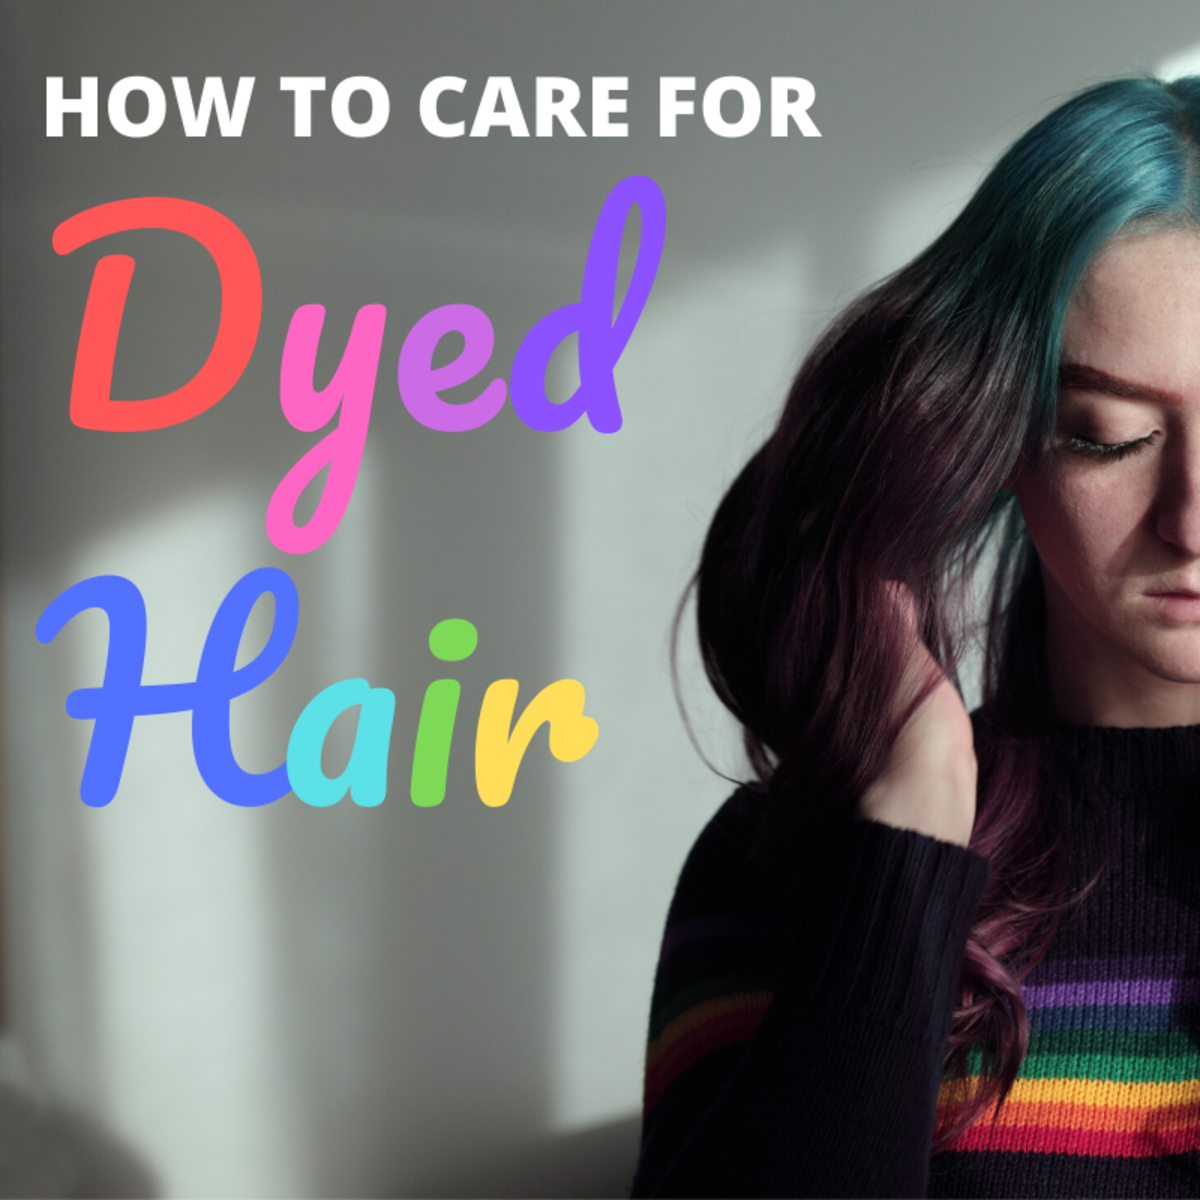 Learn everything you need to know to keep your dyed hair healthy, vibrant, and colorful.